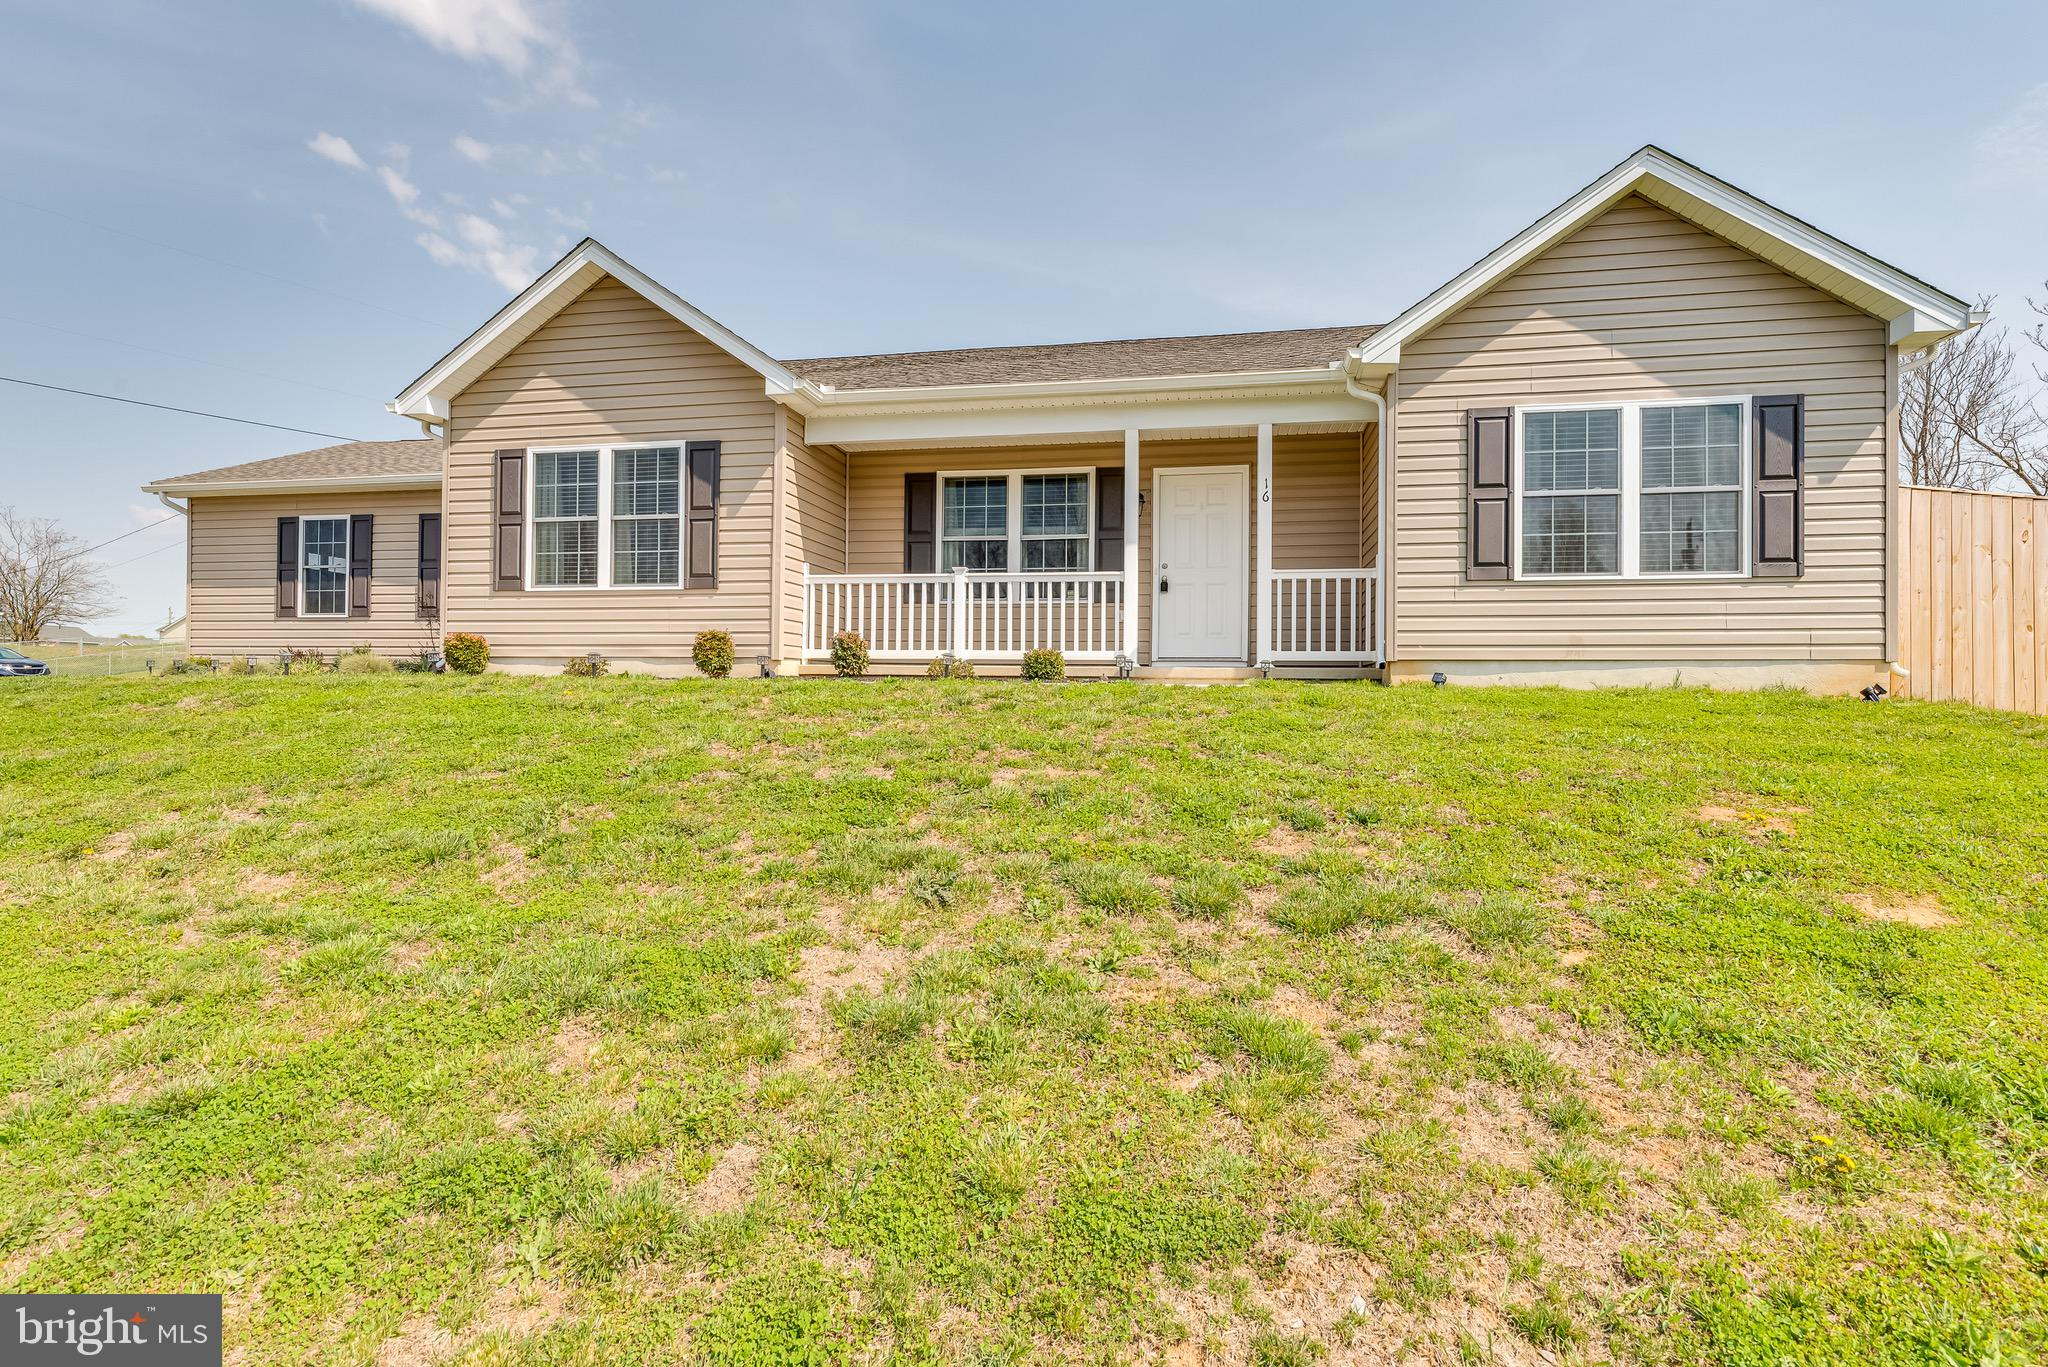 South Berkeley County - 3 bedroom, 2 bath rancher built in 2019. Features include vinyl plank floori